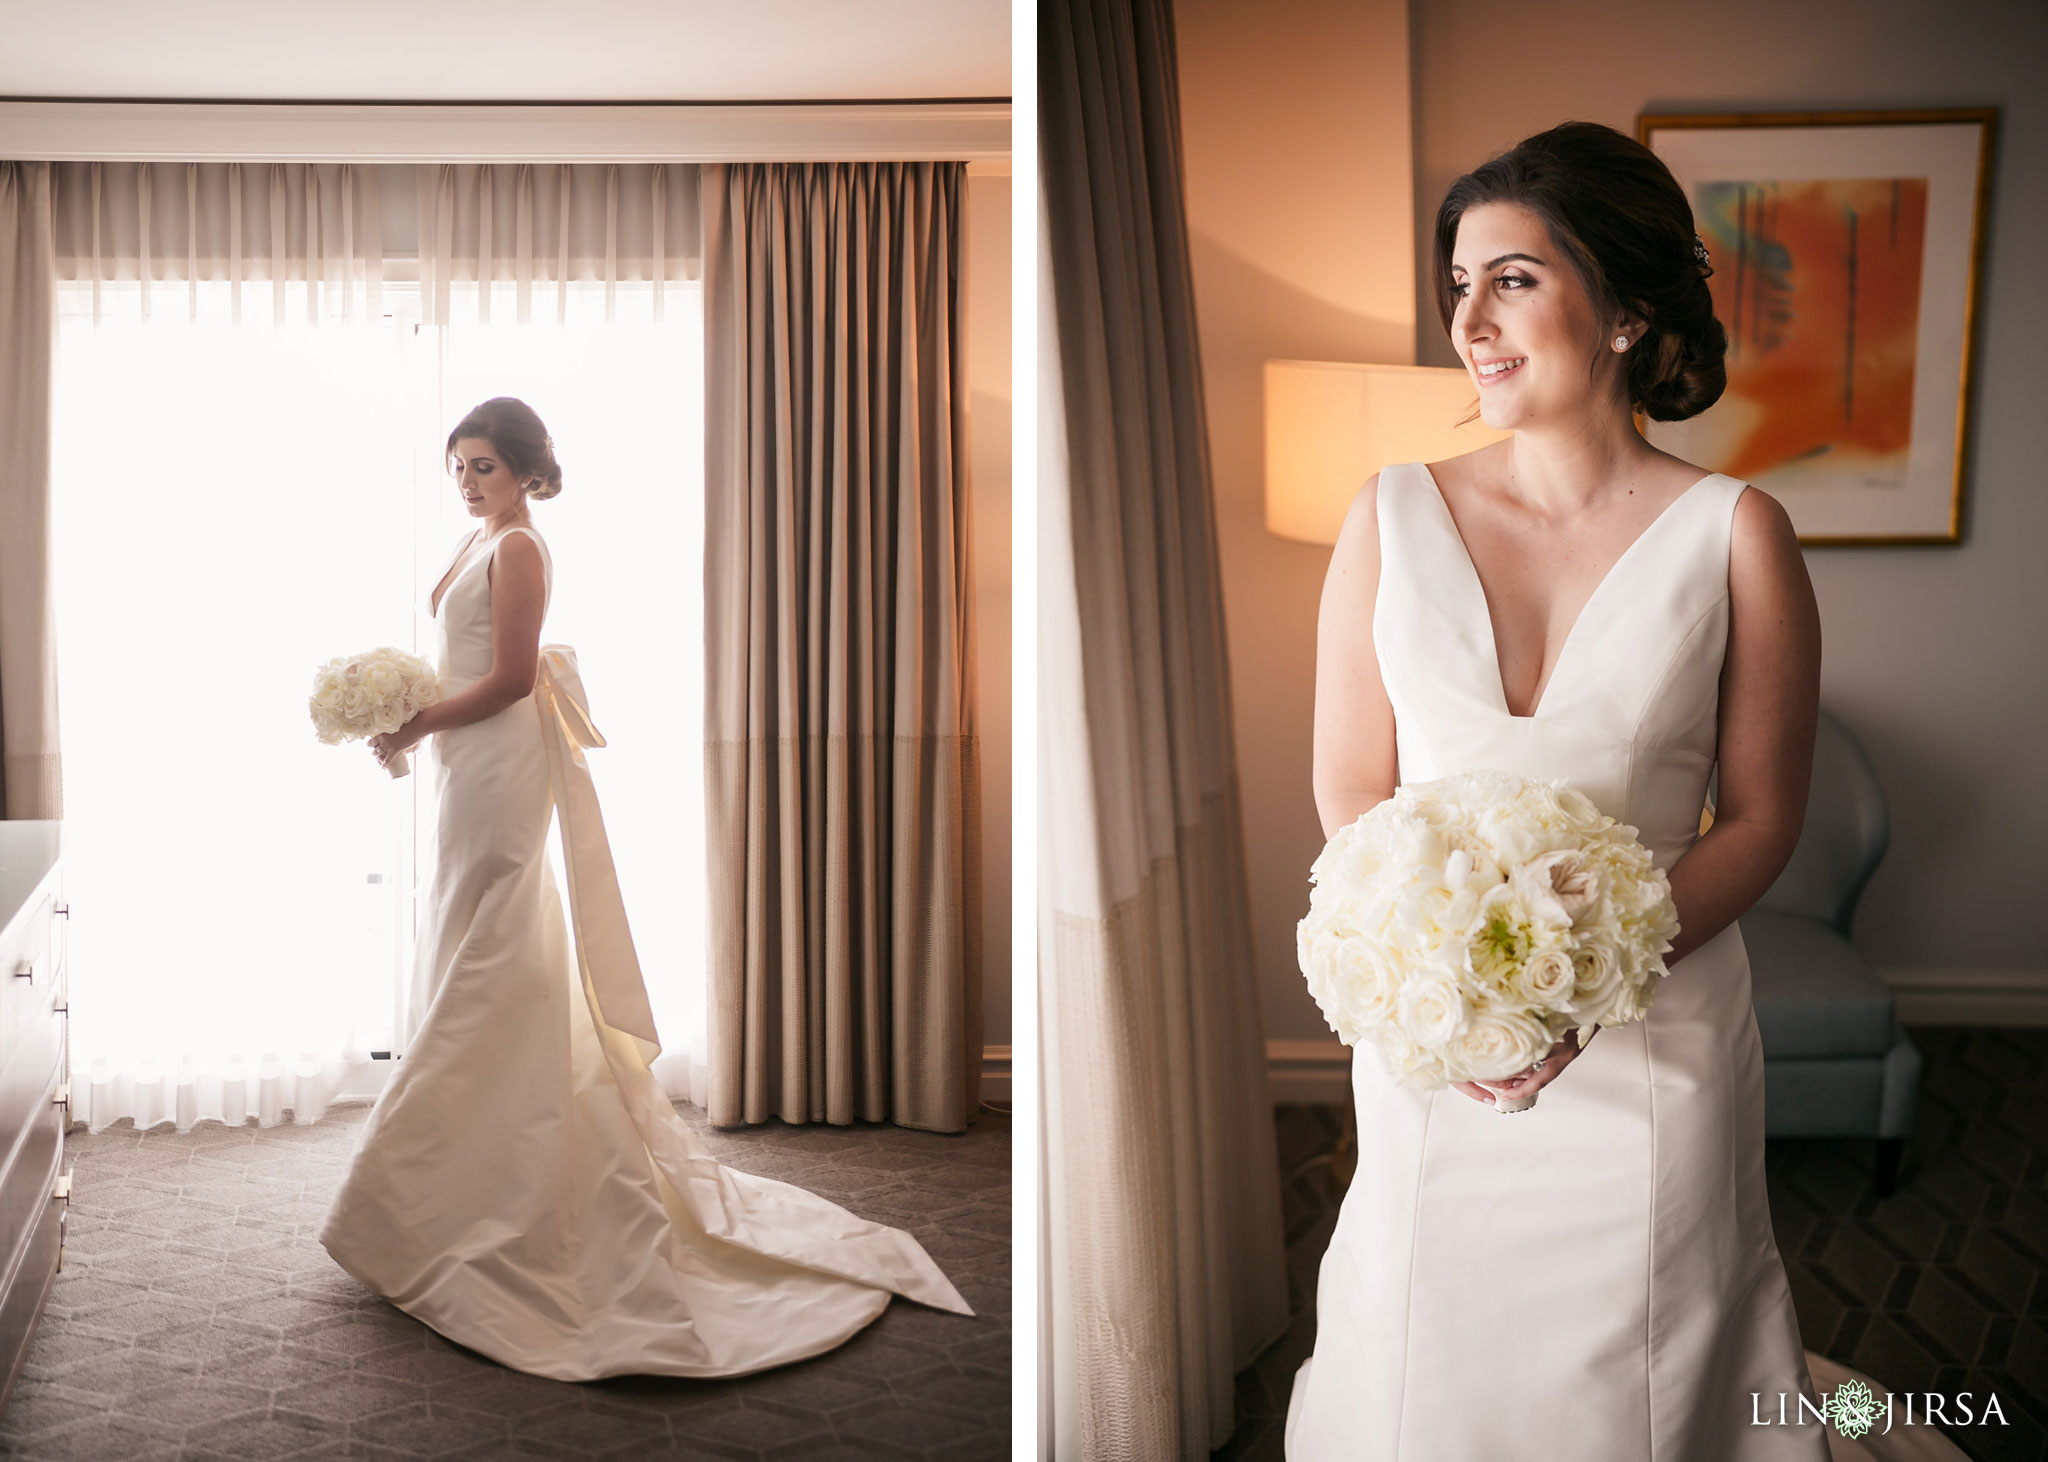 006 ritz carlton marina del rey persian bride wedding photography